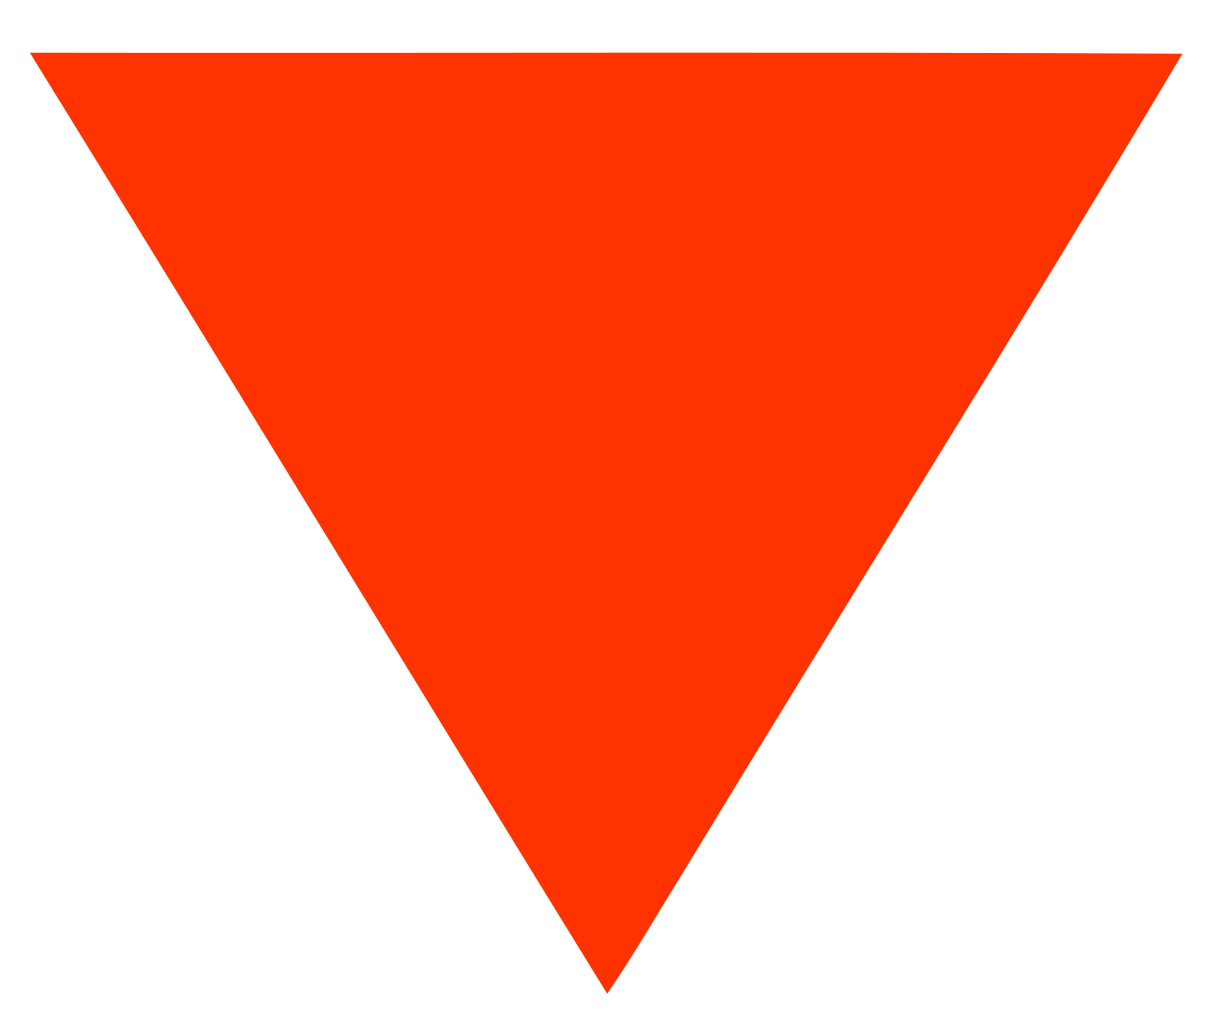 Triangle svg #8, Download drawings